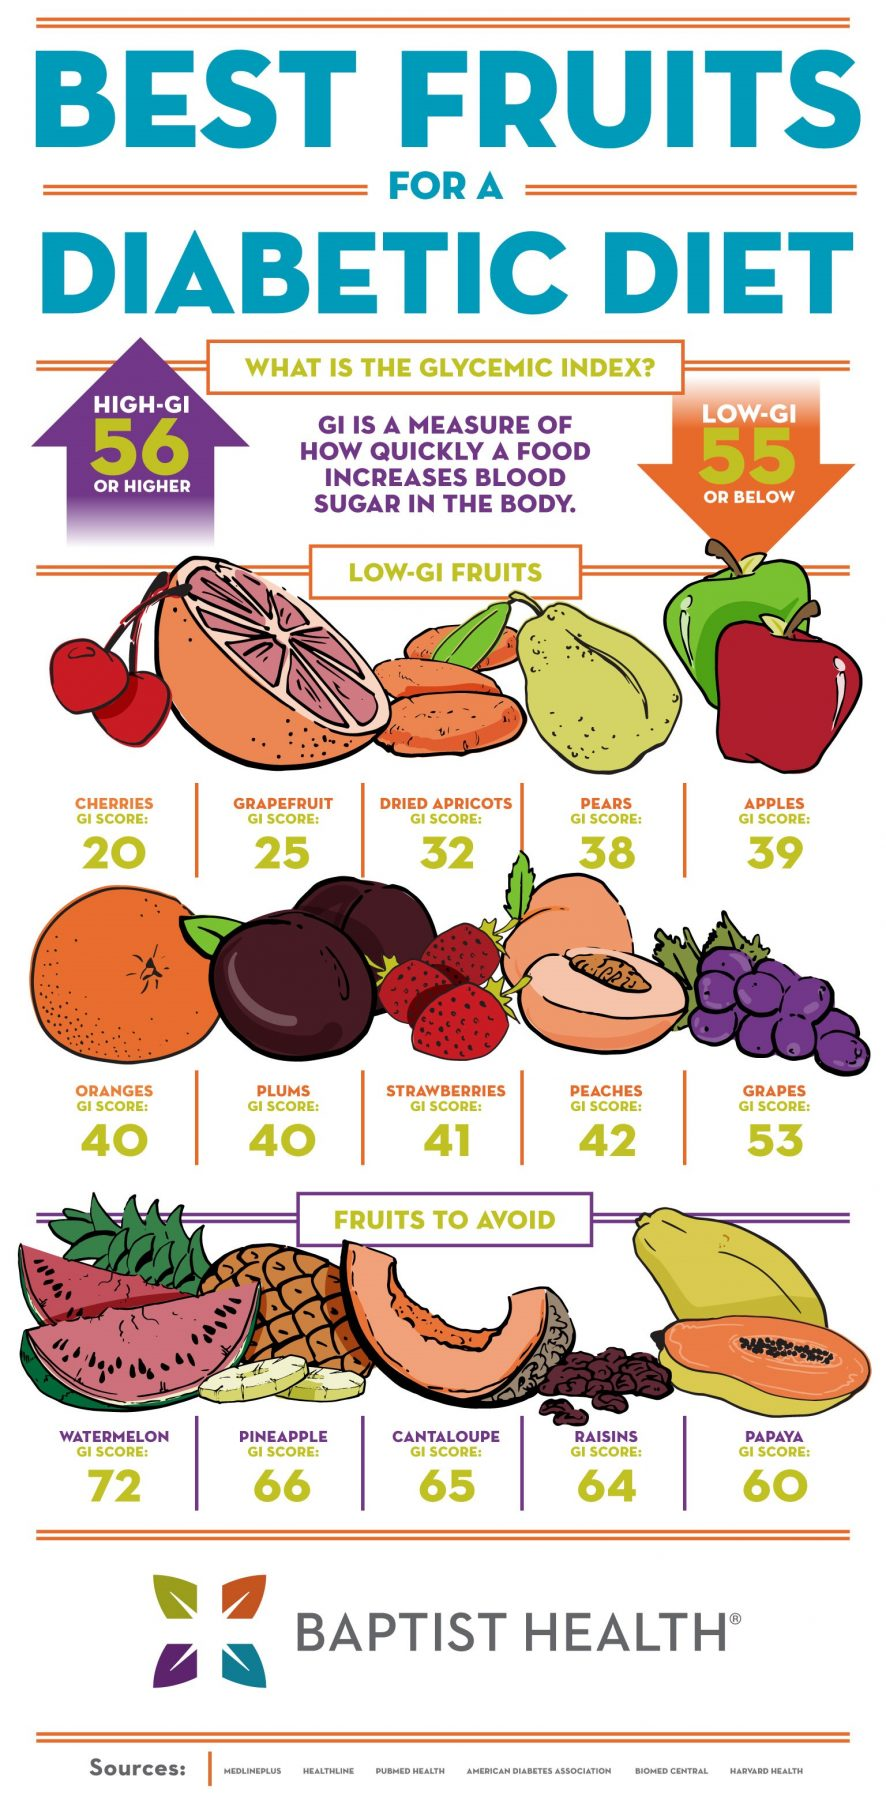 Best Fruits For A Diabetic Diet Baptist Health Blog The simple glycemic index guidelines. best fruits for a diabetic diet